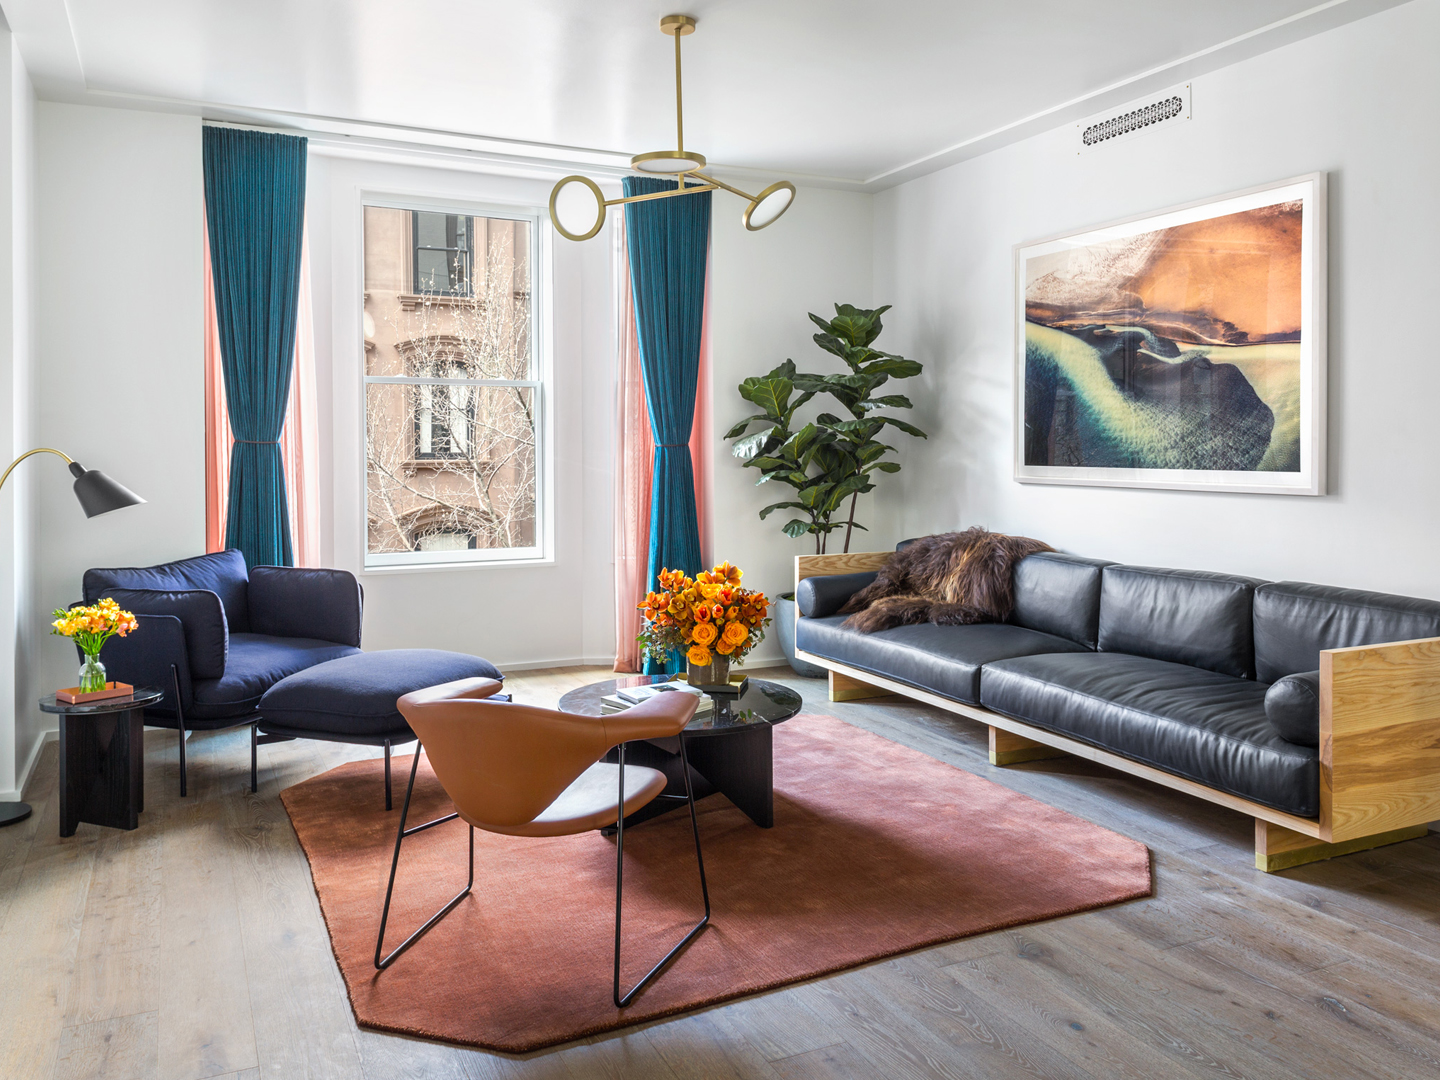 Matter curates show home at The Standish condominiums in Brooklyn - July 20, 2017 | DezeenNew York design showroom and gallery Matter has outfitted a model apartment in a historic Brooklyn Heights hotel undergoing conversion into residences …Read More